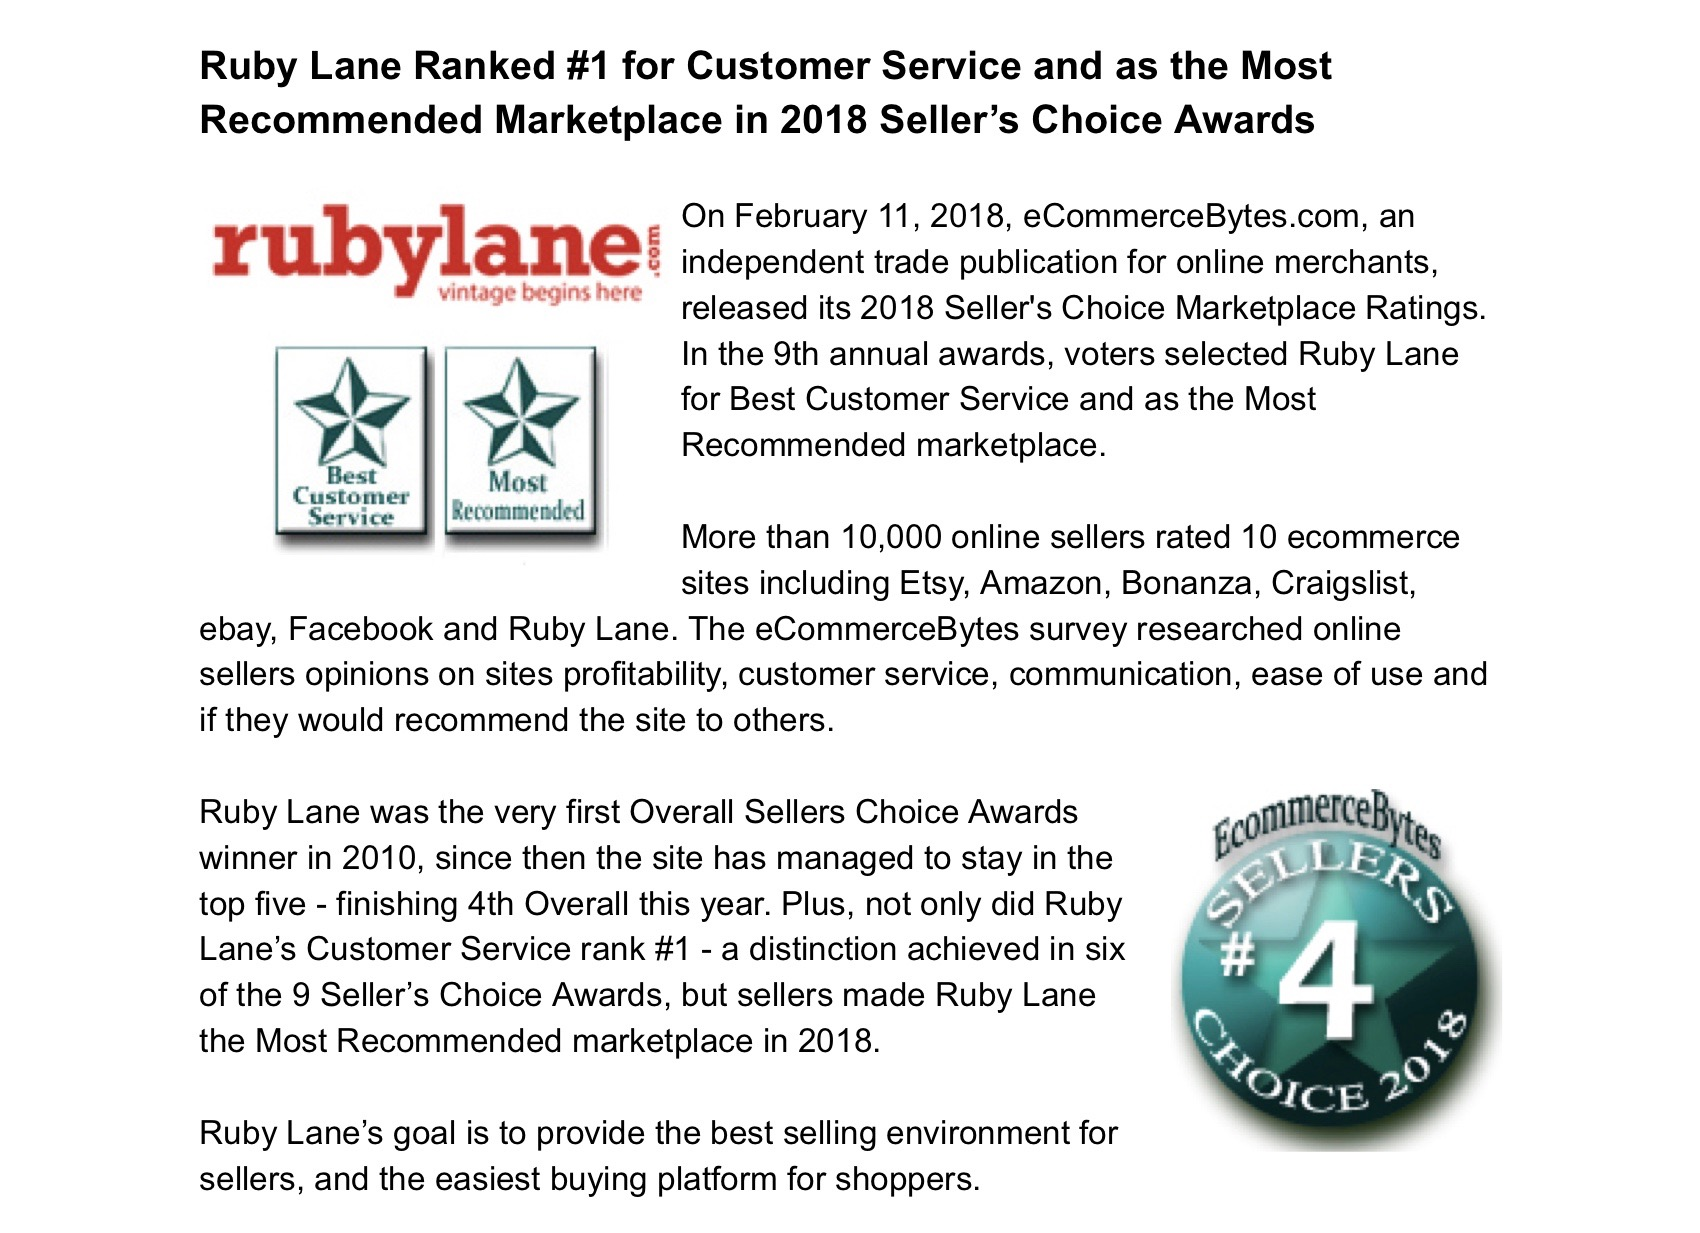 February 11, 2018,  Ruby Lane Takes Top Honors in 2018 Seller's Choice Awards image 1